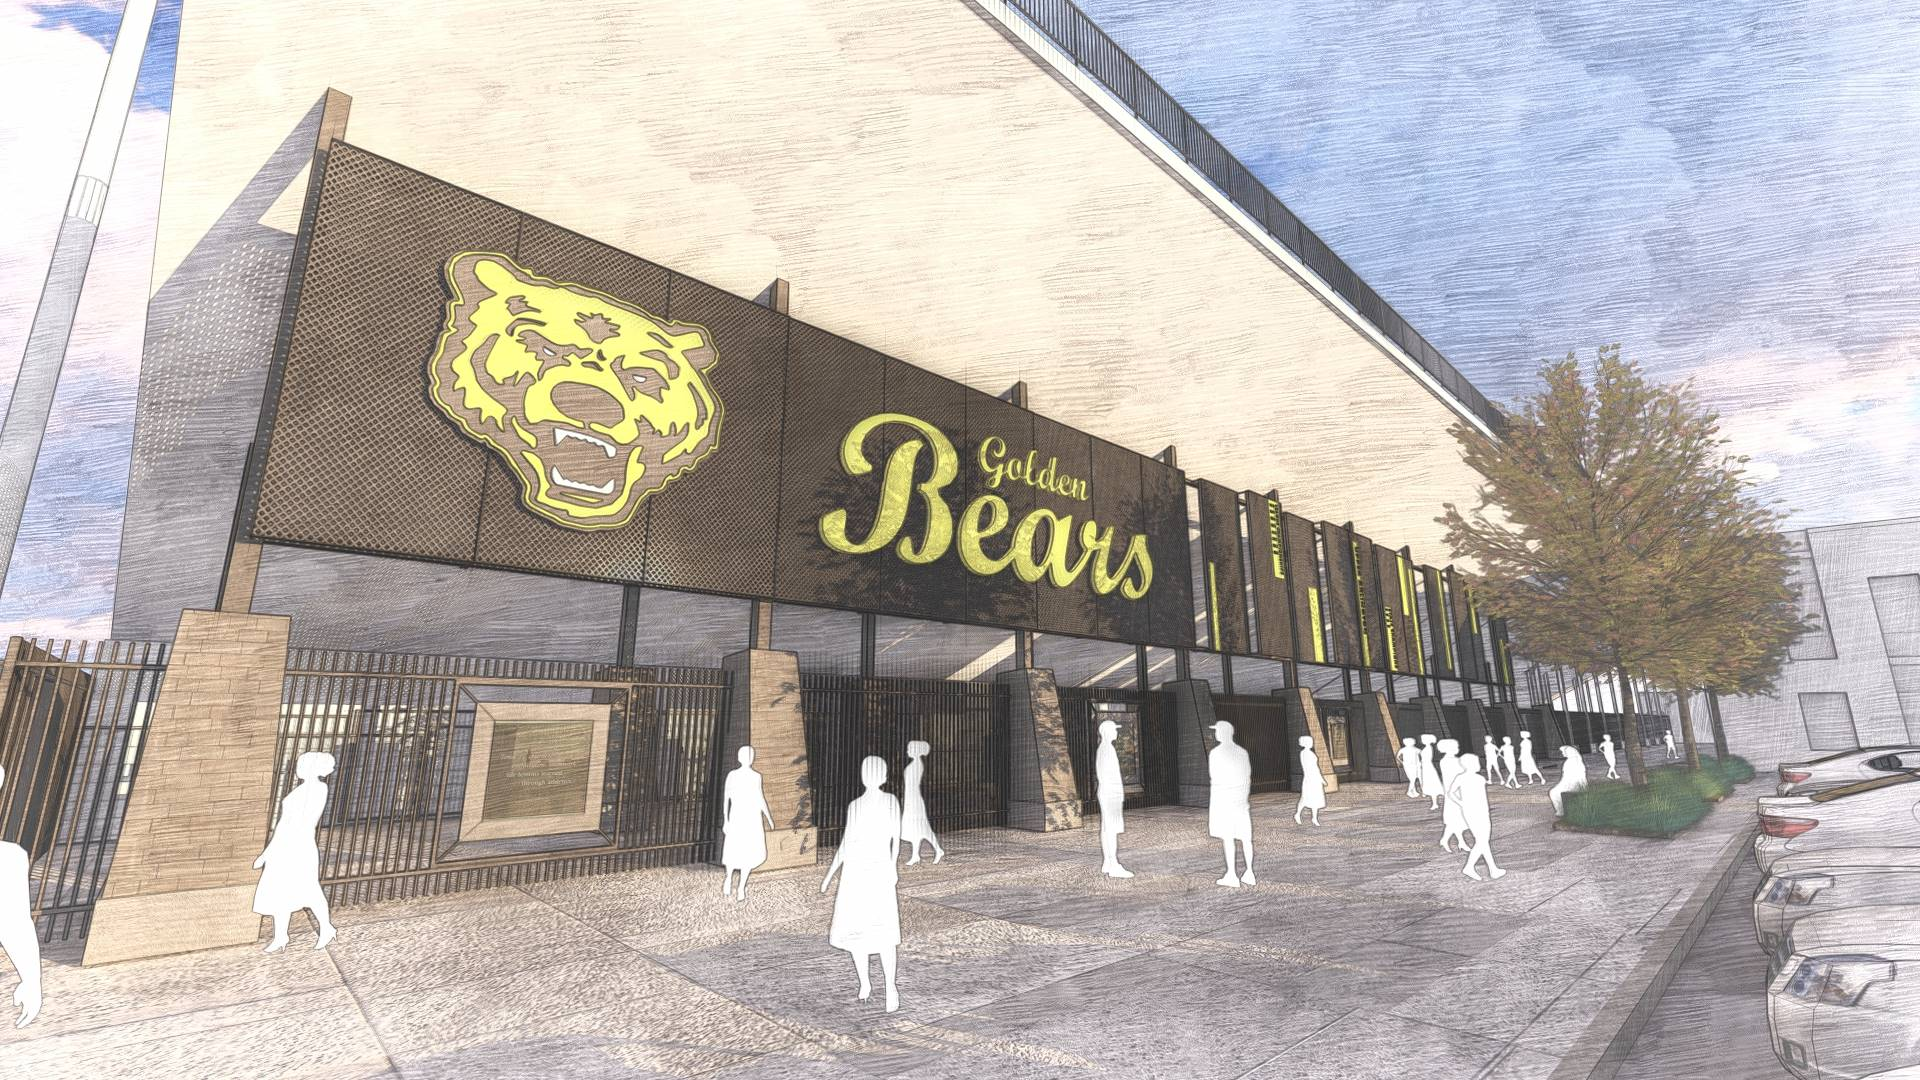 A new north stadium entrance with Golden Bears logos